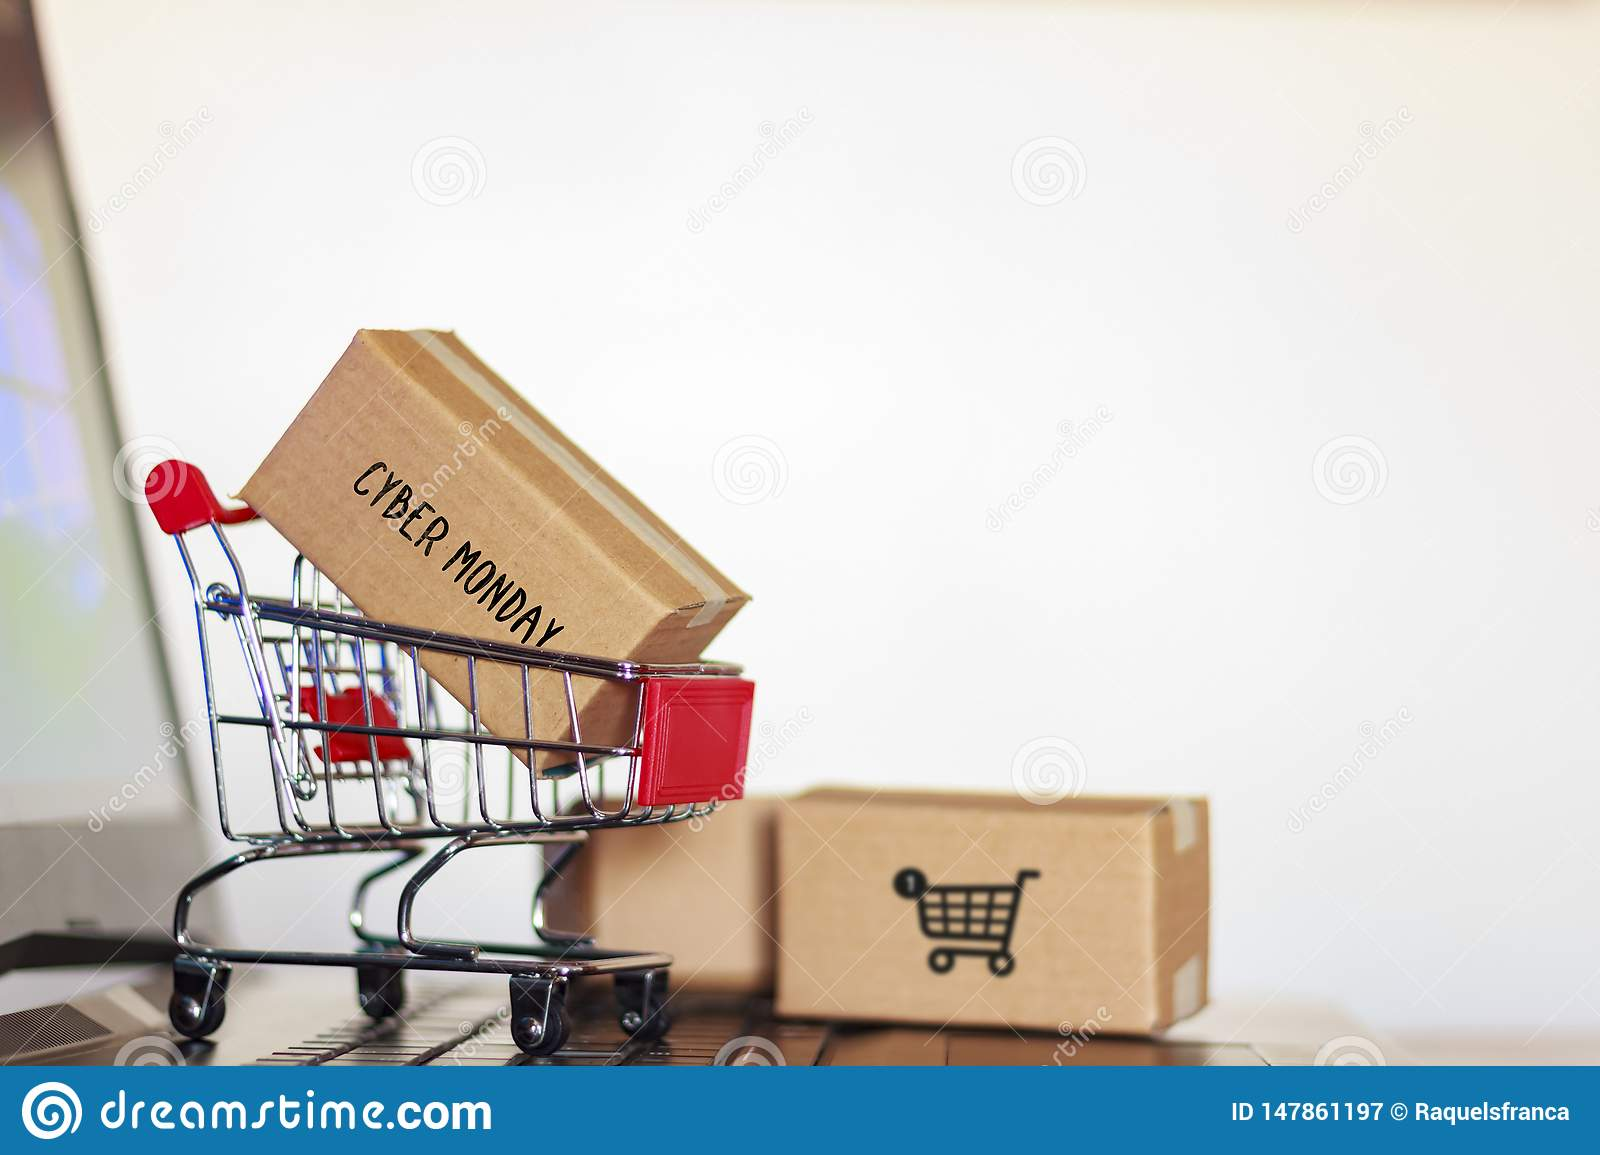 Carton box with cyber monday word and shopping cart on computer. Online shopping, e-commerce concept